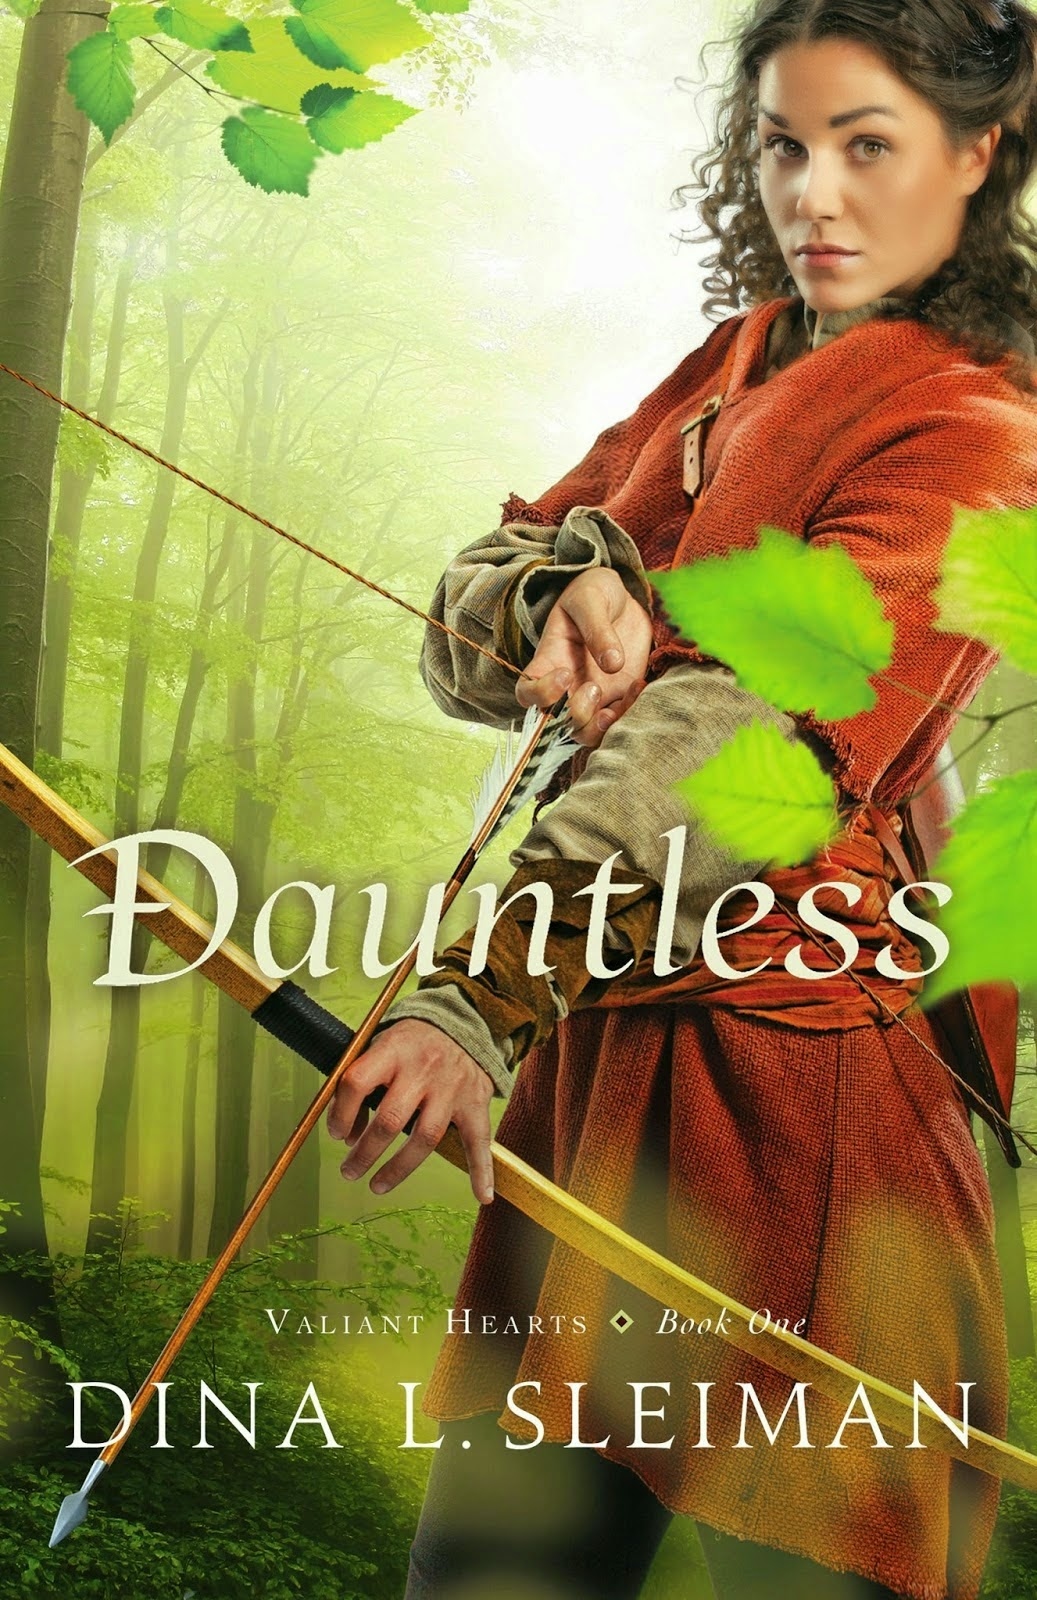 Photo of Dauntless by Dina Sleiman